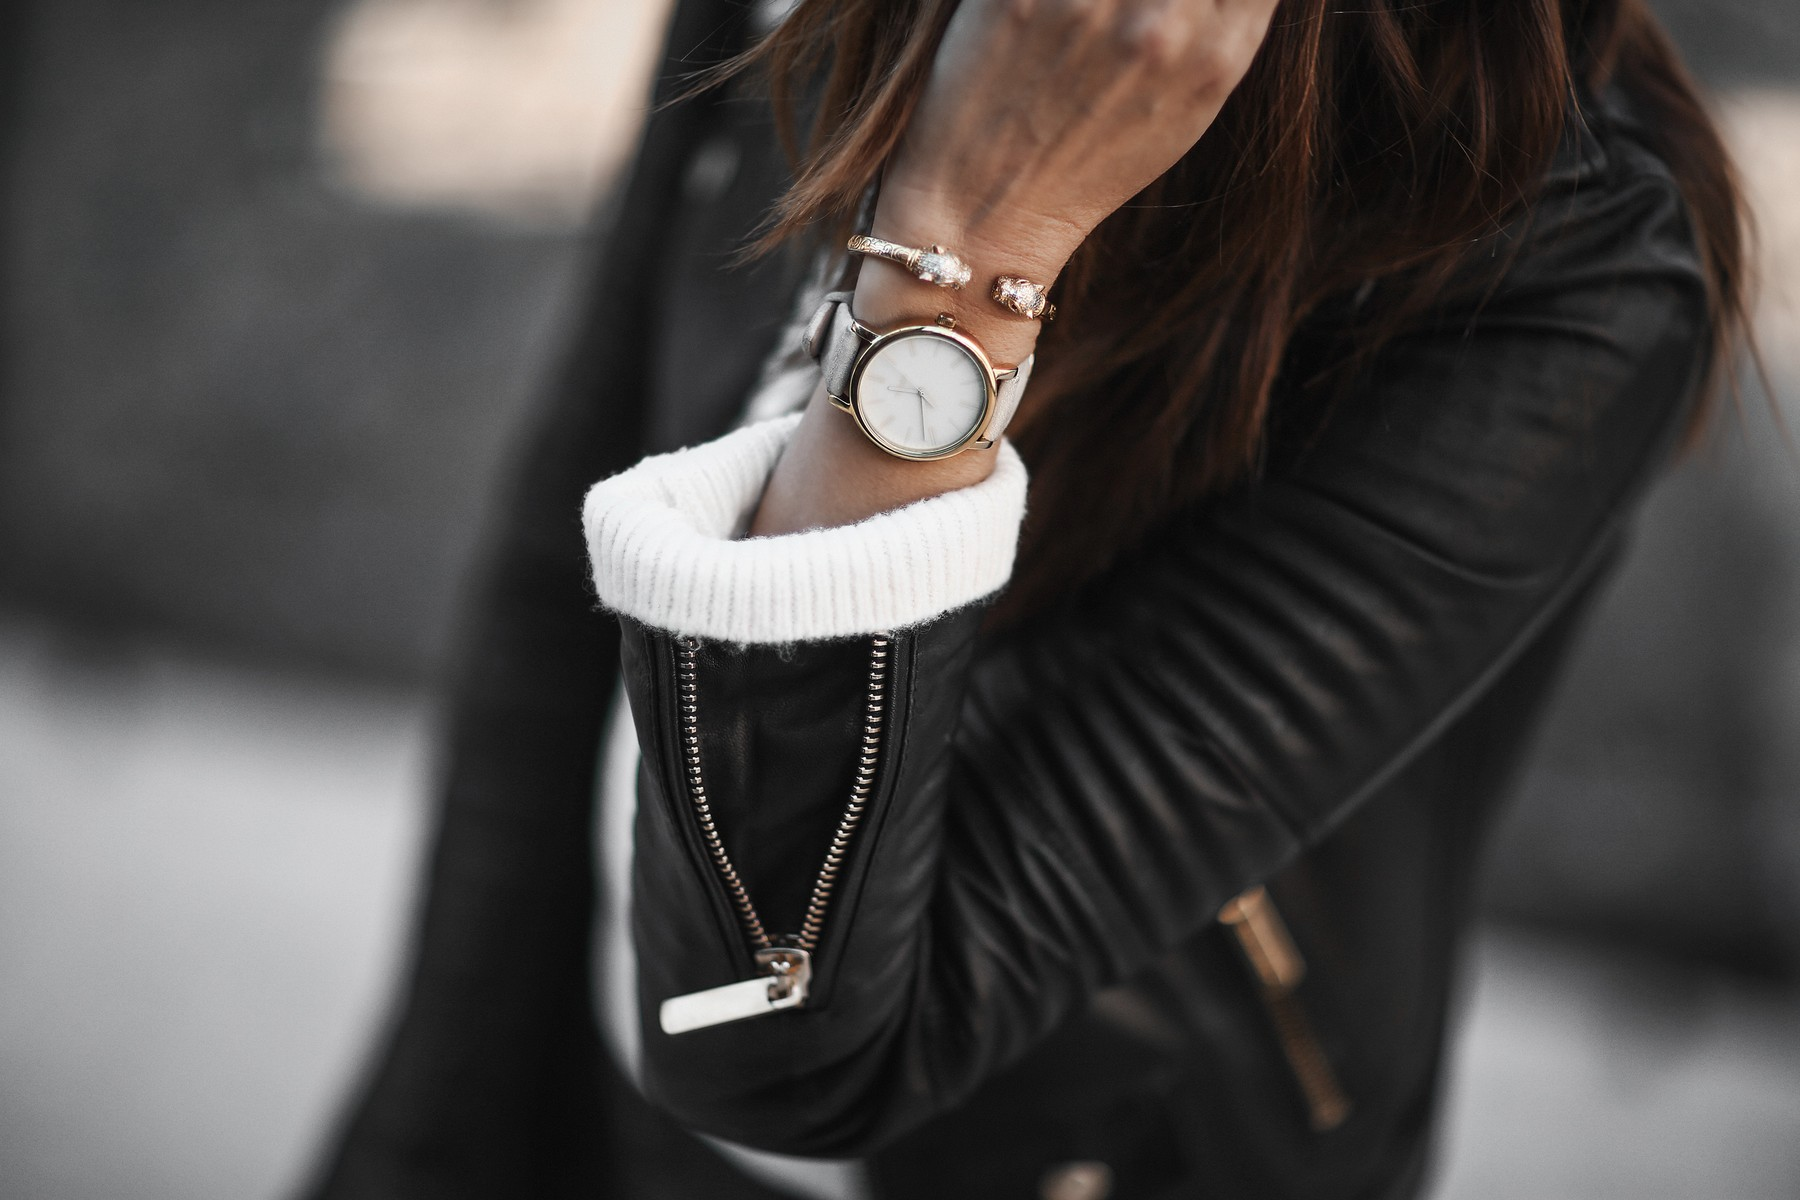 timex watch and leather jacket